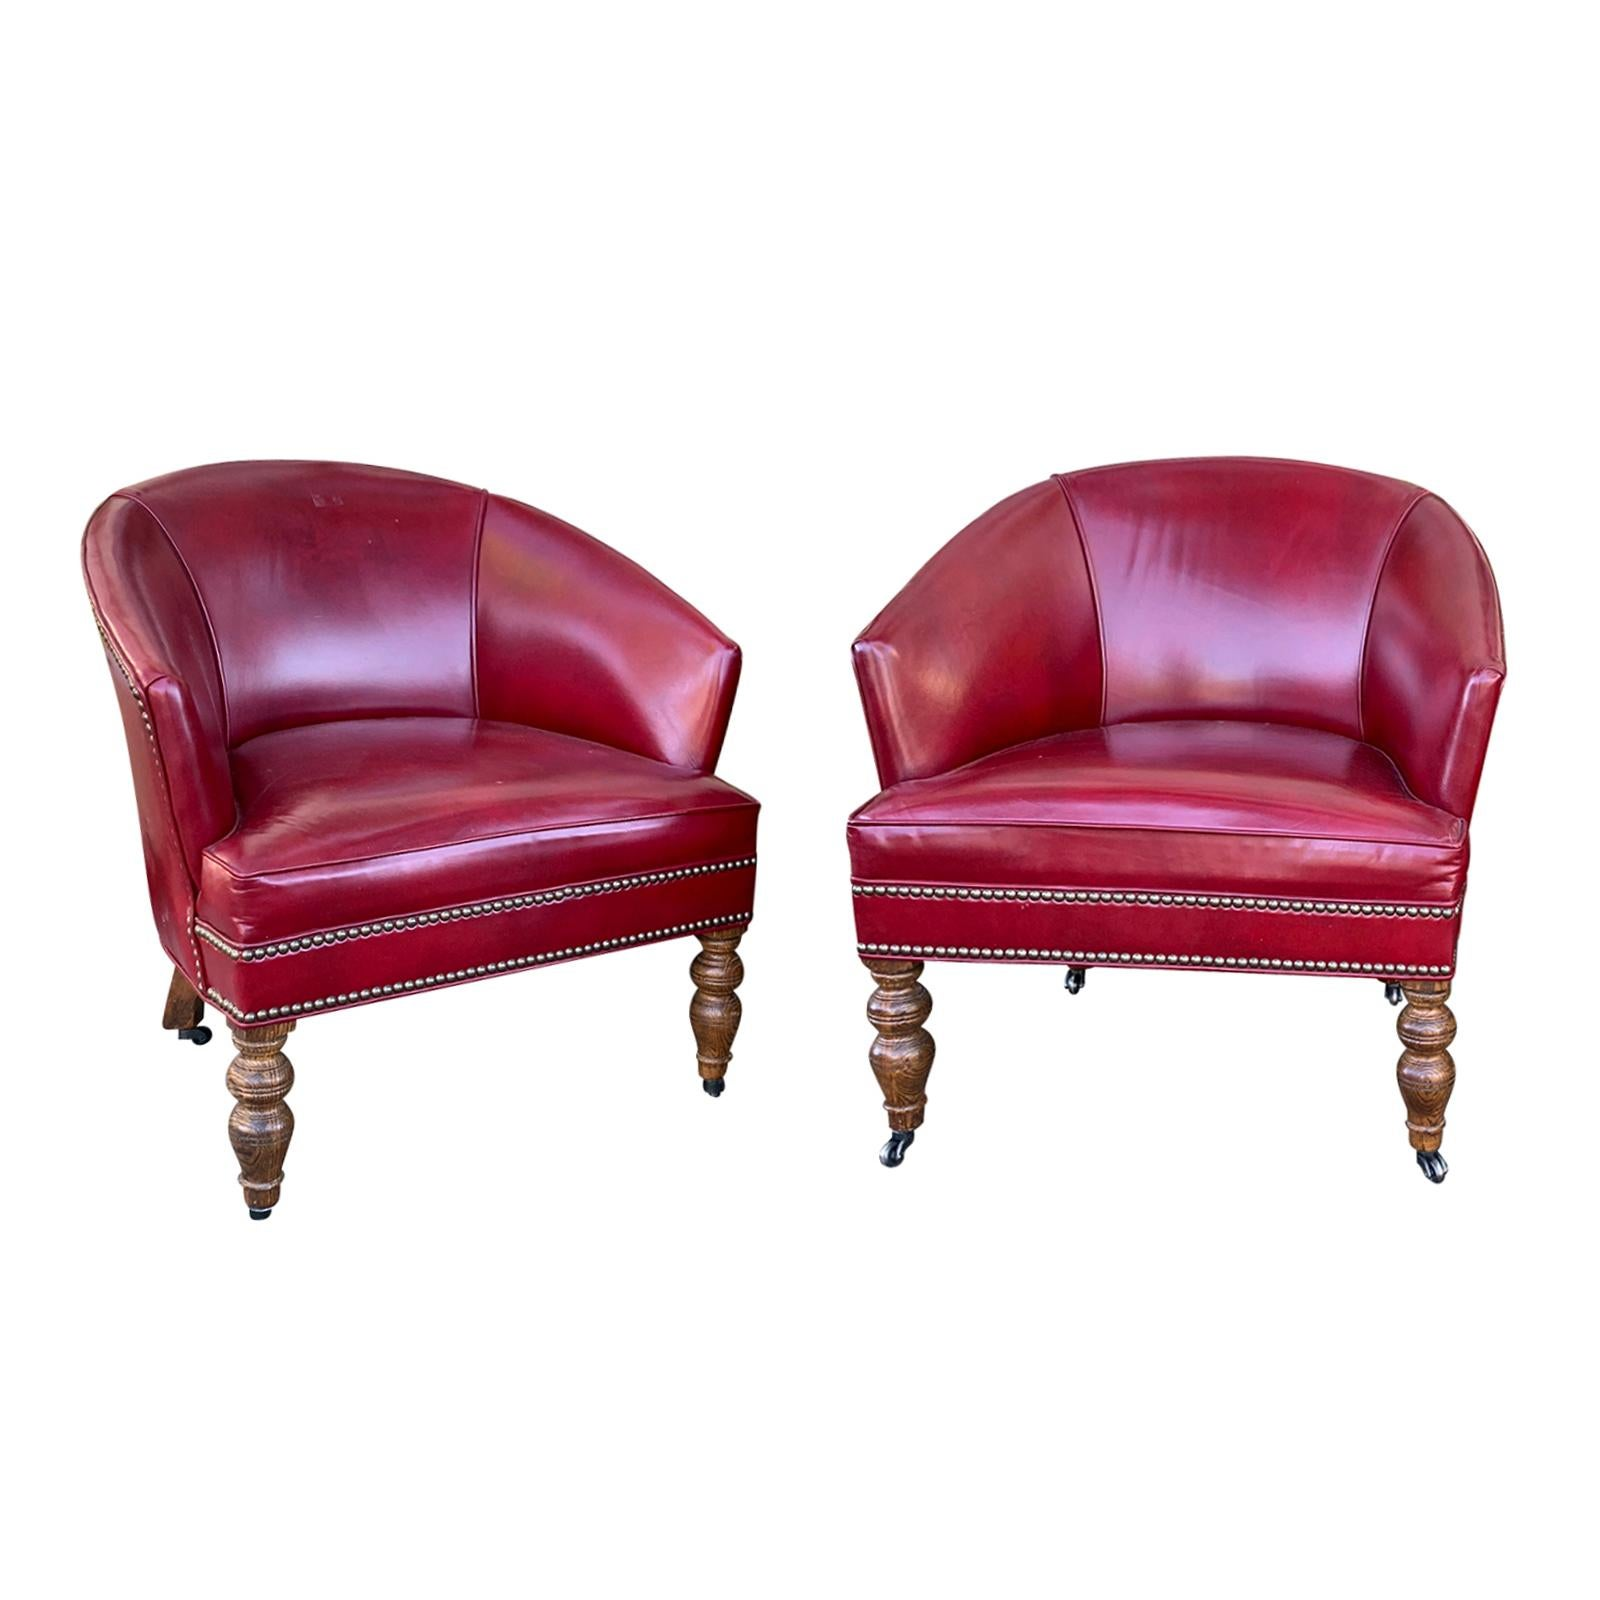 Groovy Pair Of 20Th Century English Red Leather Barrel Chairs At Unemploymentrelief Wooden Chair Designs For Living Room Unemploymentrelieforg